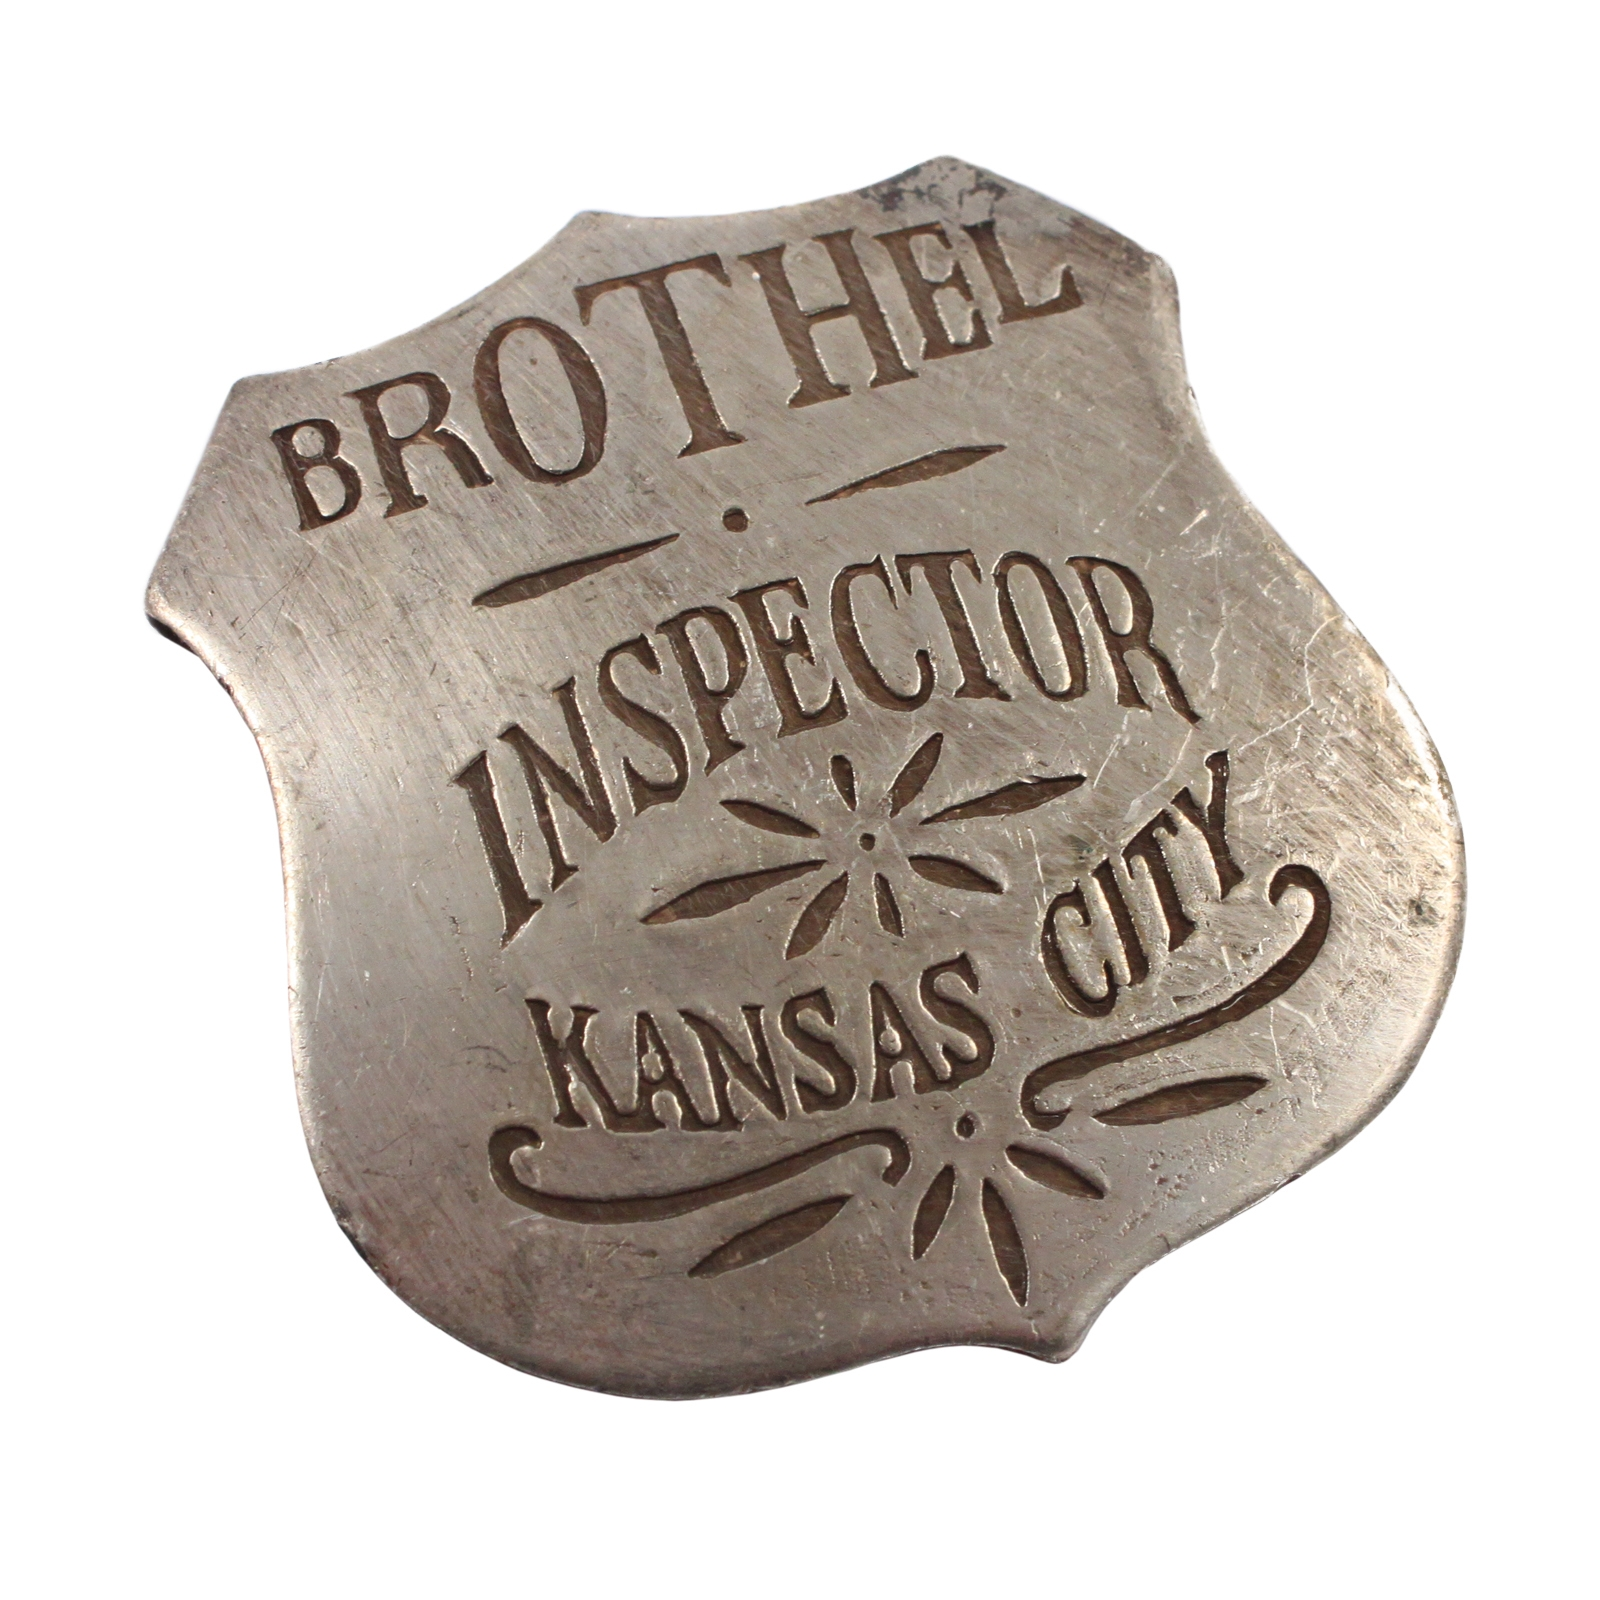 Kansas City Brothel Inspector Old West Badge